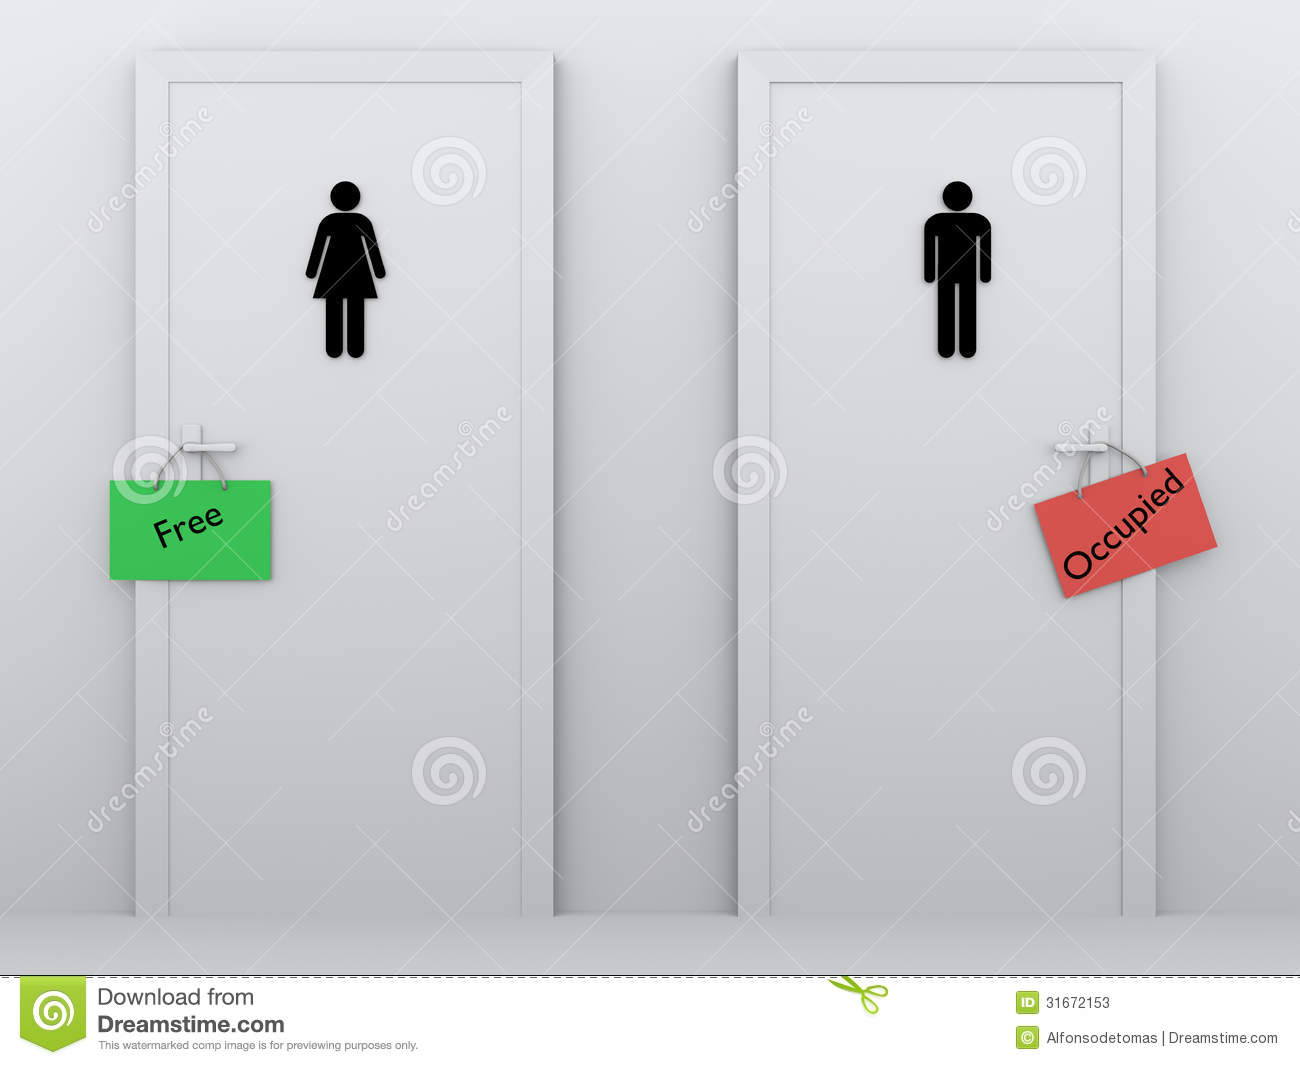 Toilets Occupied And Free Stock Photos  Image 31672153